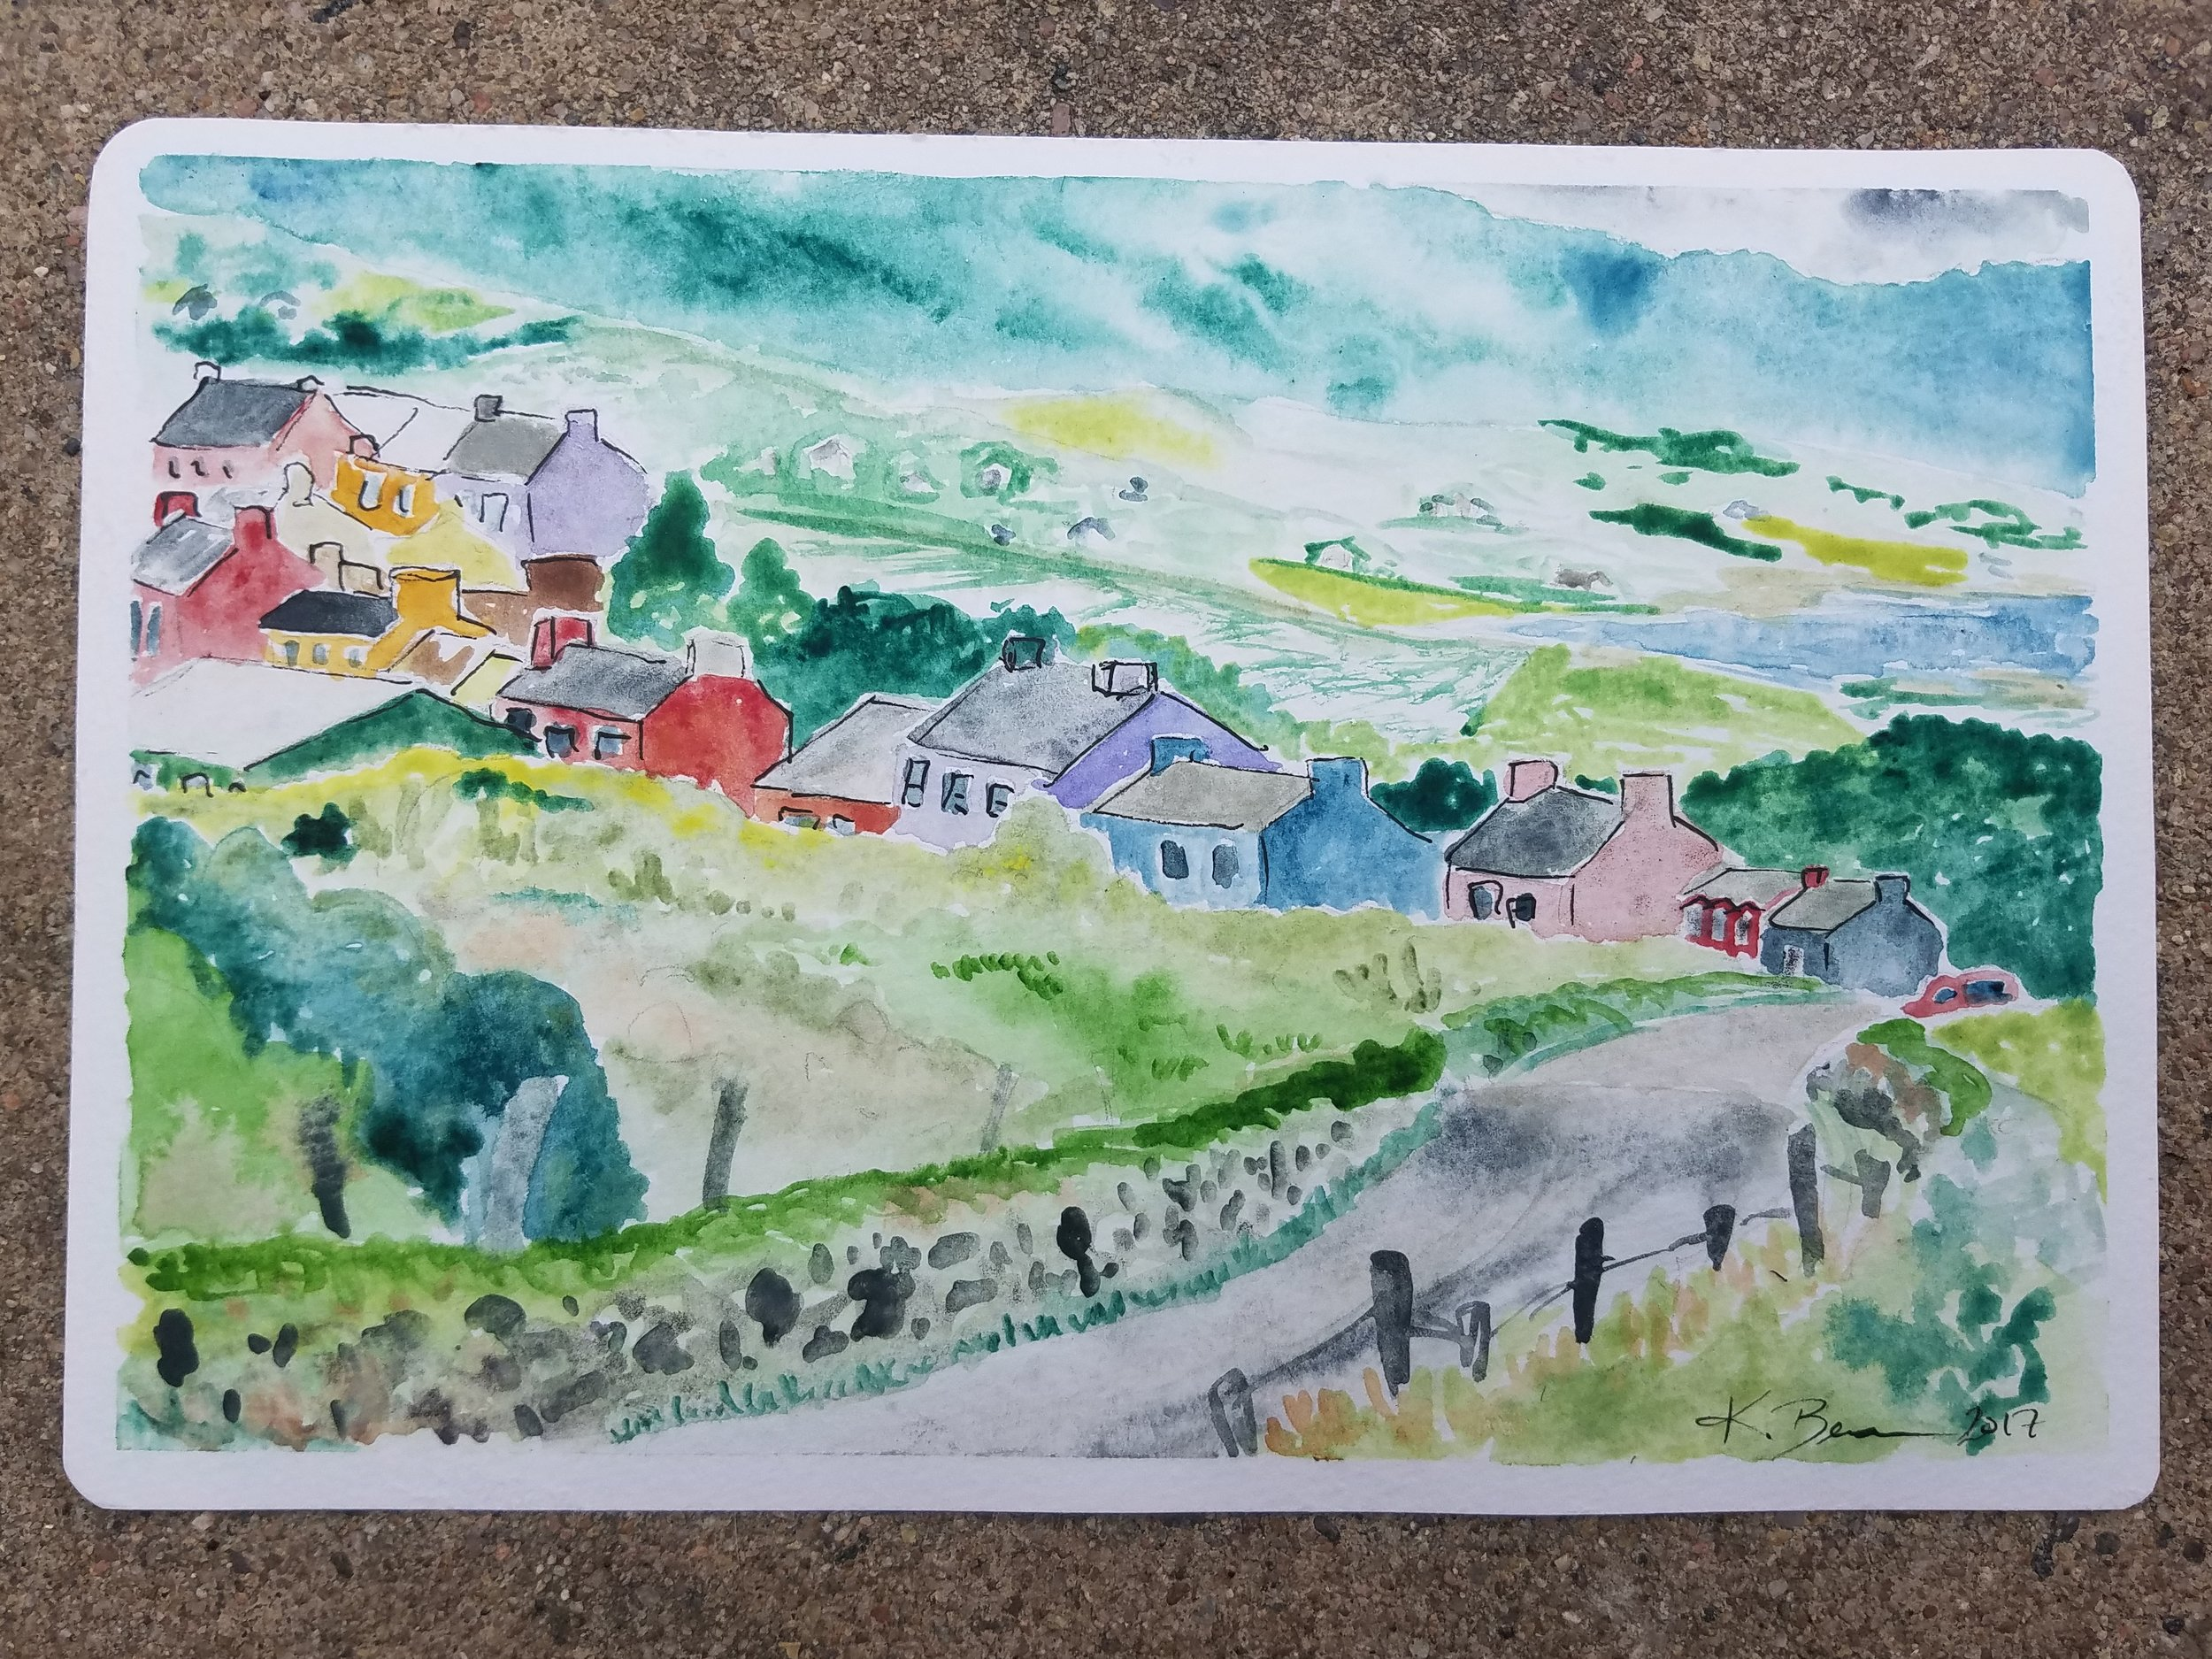 Feeling the ENERGY in Utah.  This week I'm back in Salt Lake capturing content for an Energy Democracy Symposium at the University of Utah. Starting tomorrow...so for now here's a watercolor card of the Irish countryside I made for my Da.